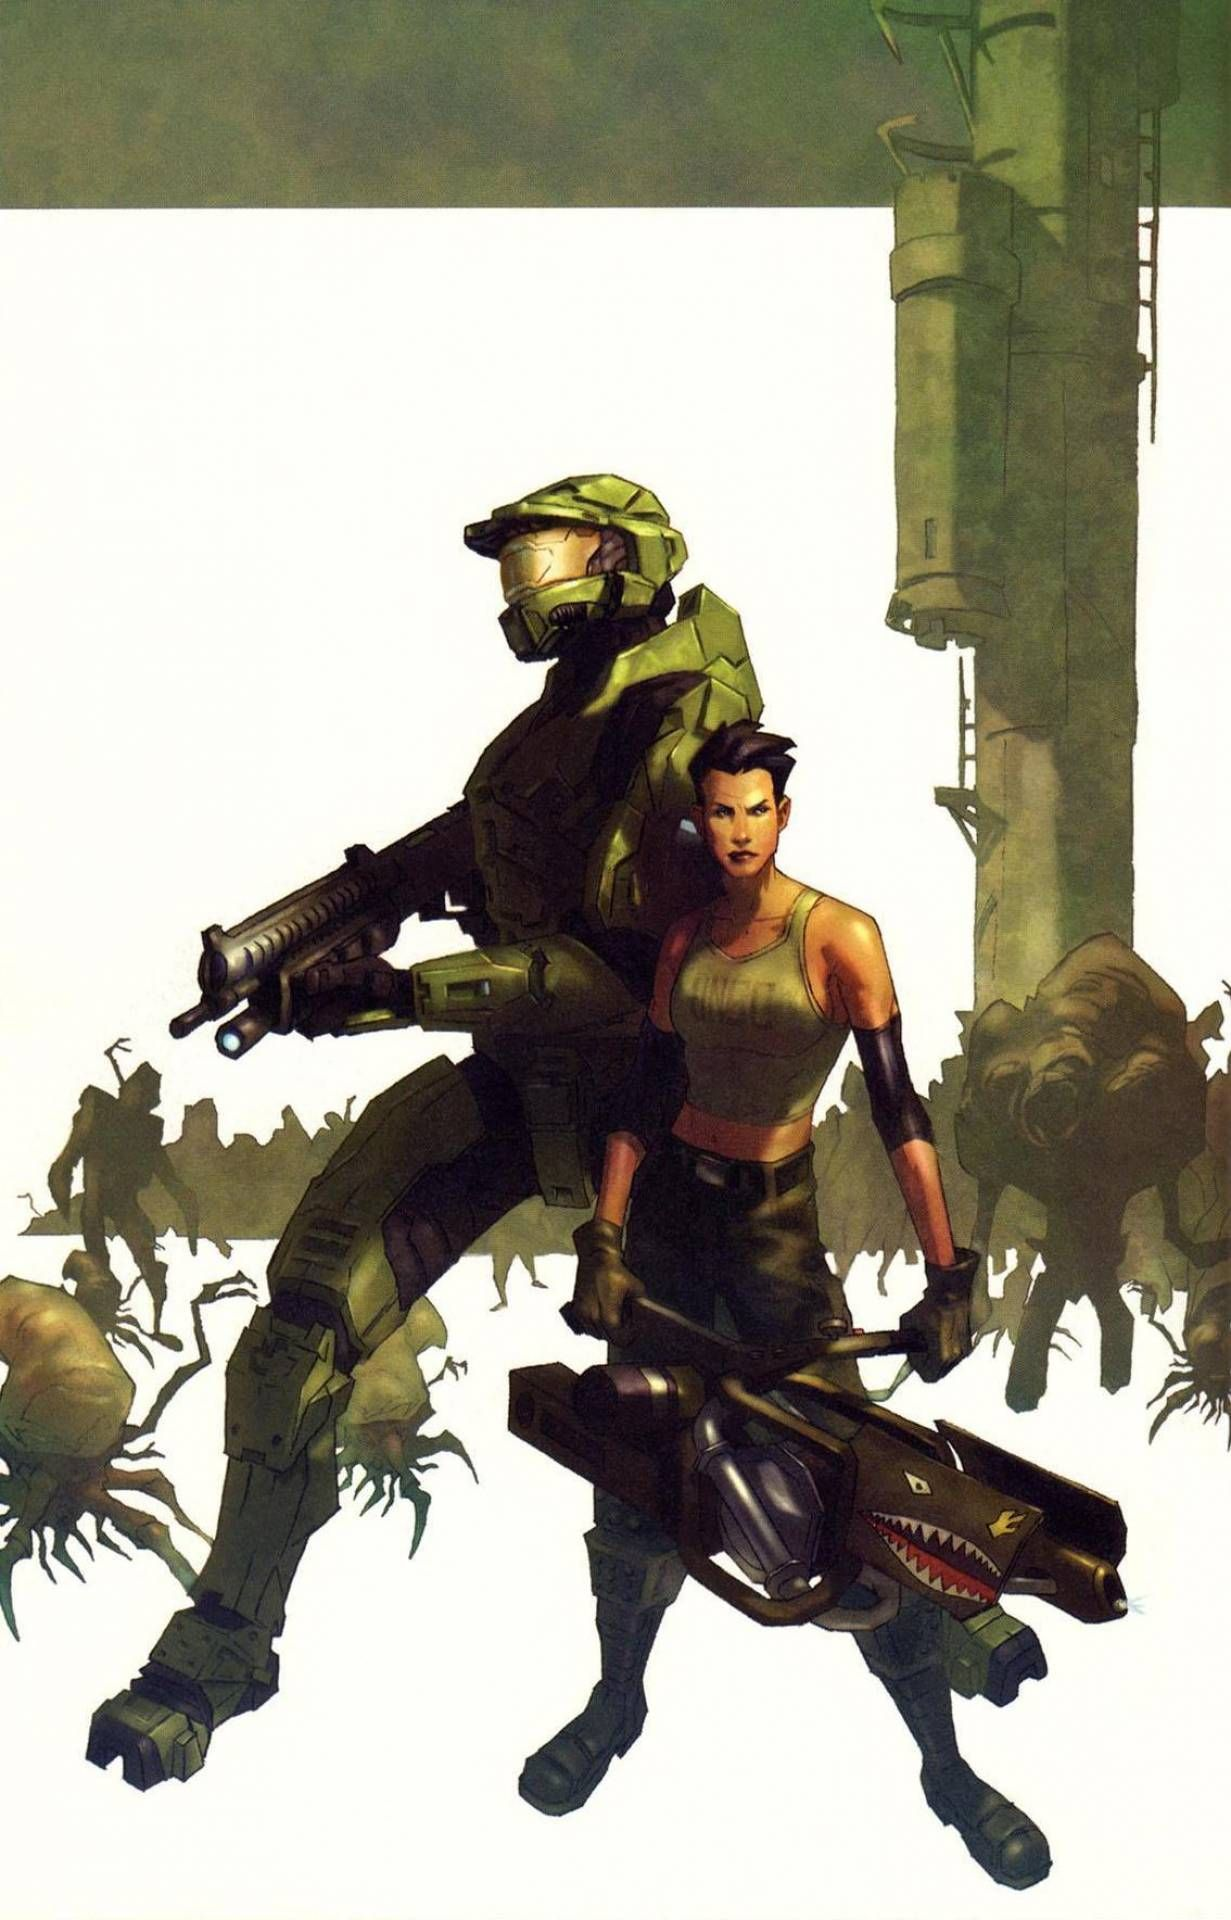 Pin by Chris on halo stuff Halo, Desktop pictures, Halo